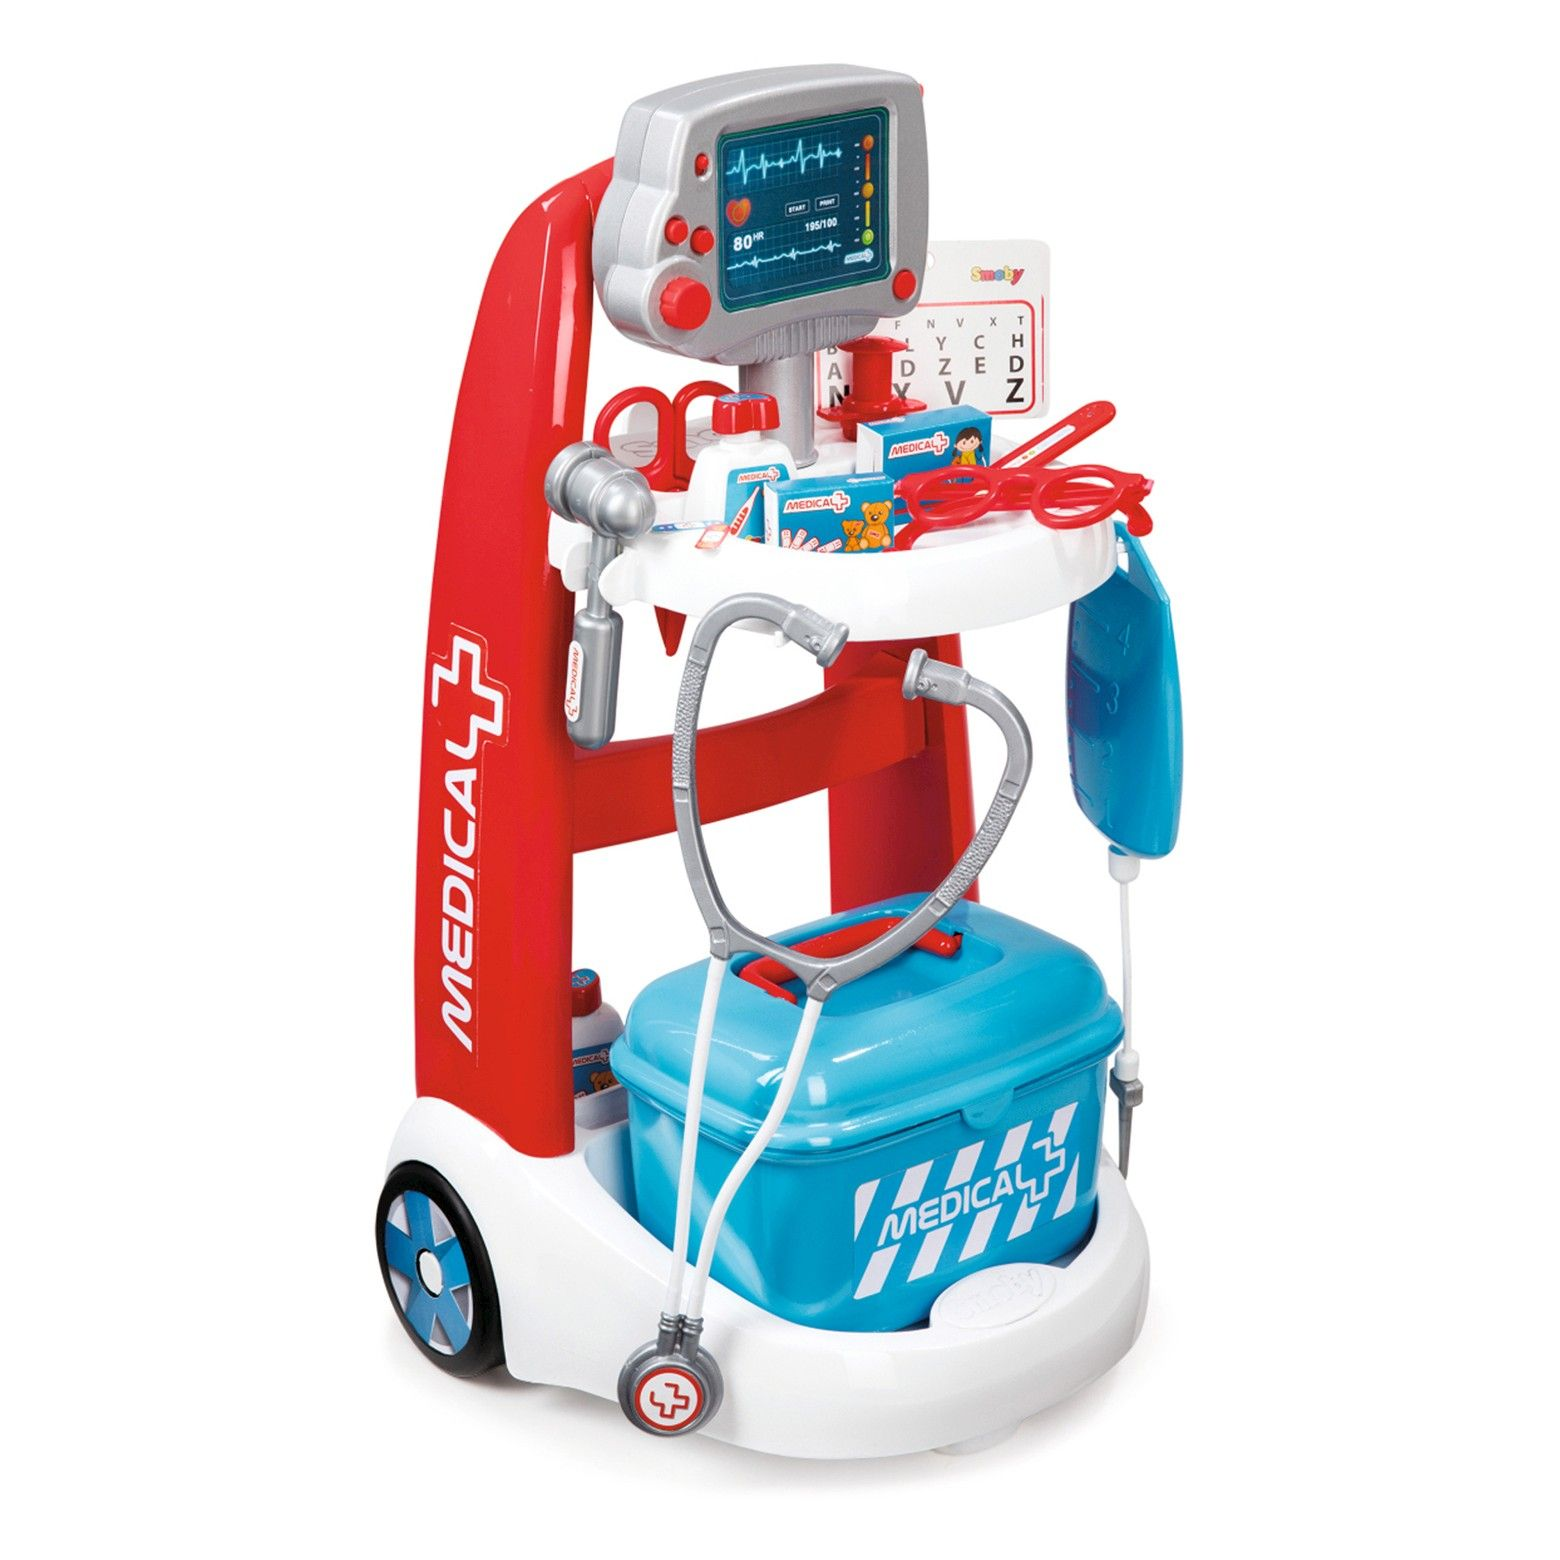 Smoby Doctor Playset Trolley with Accessories and Sounds